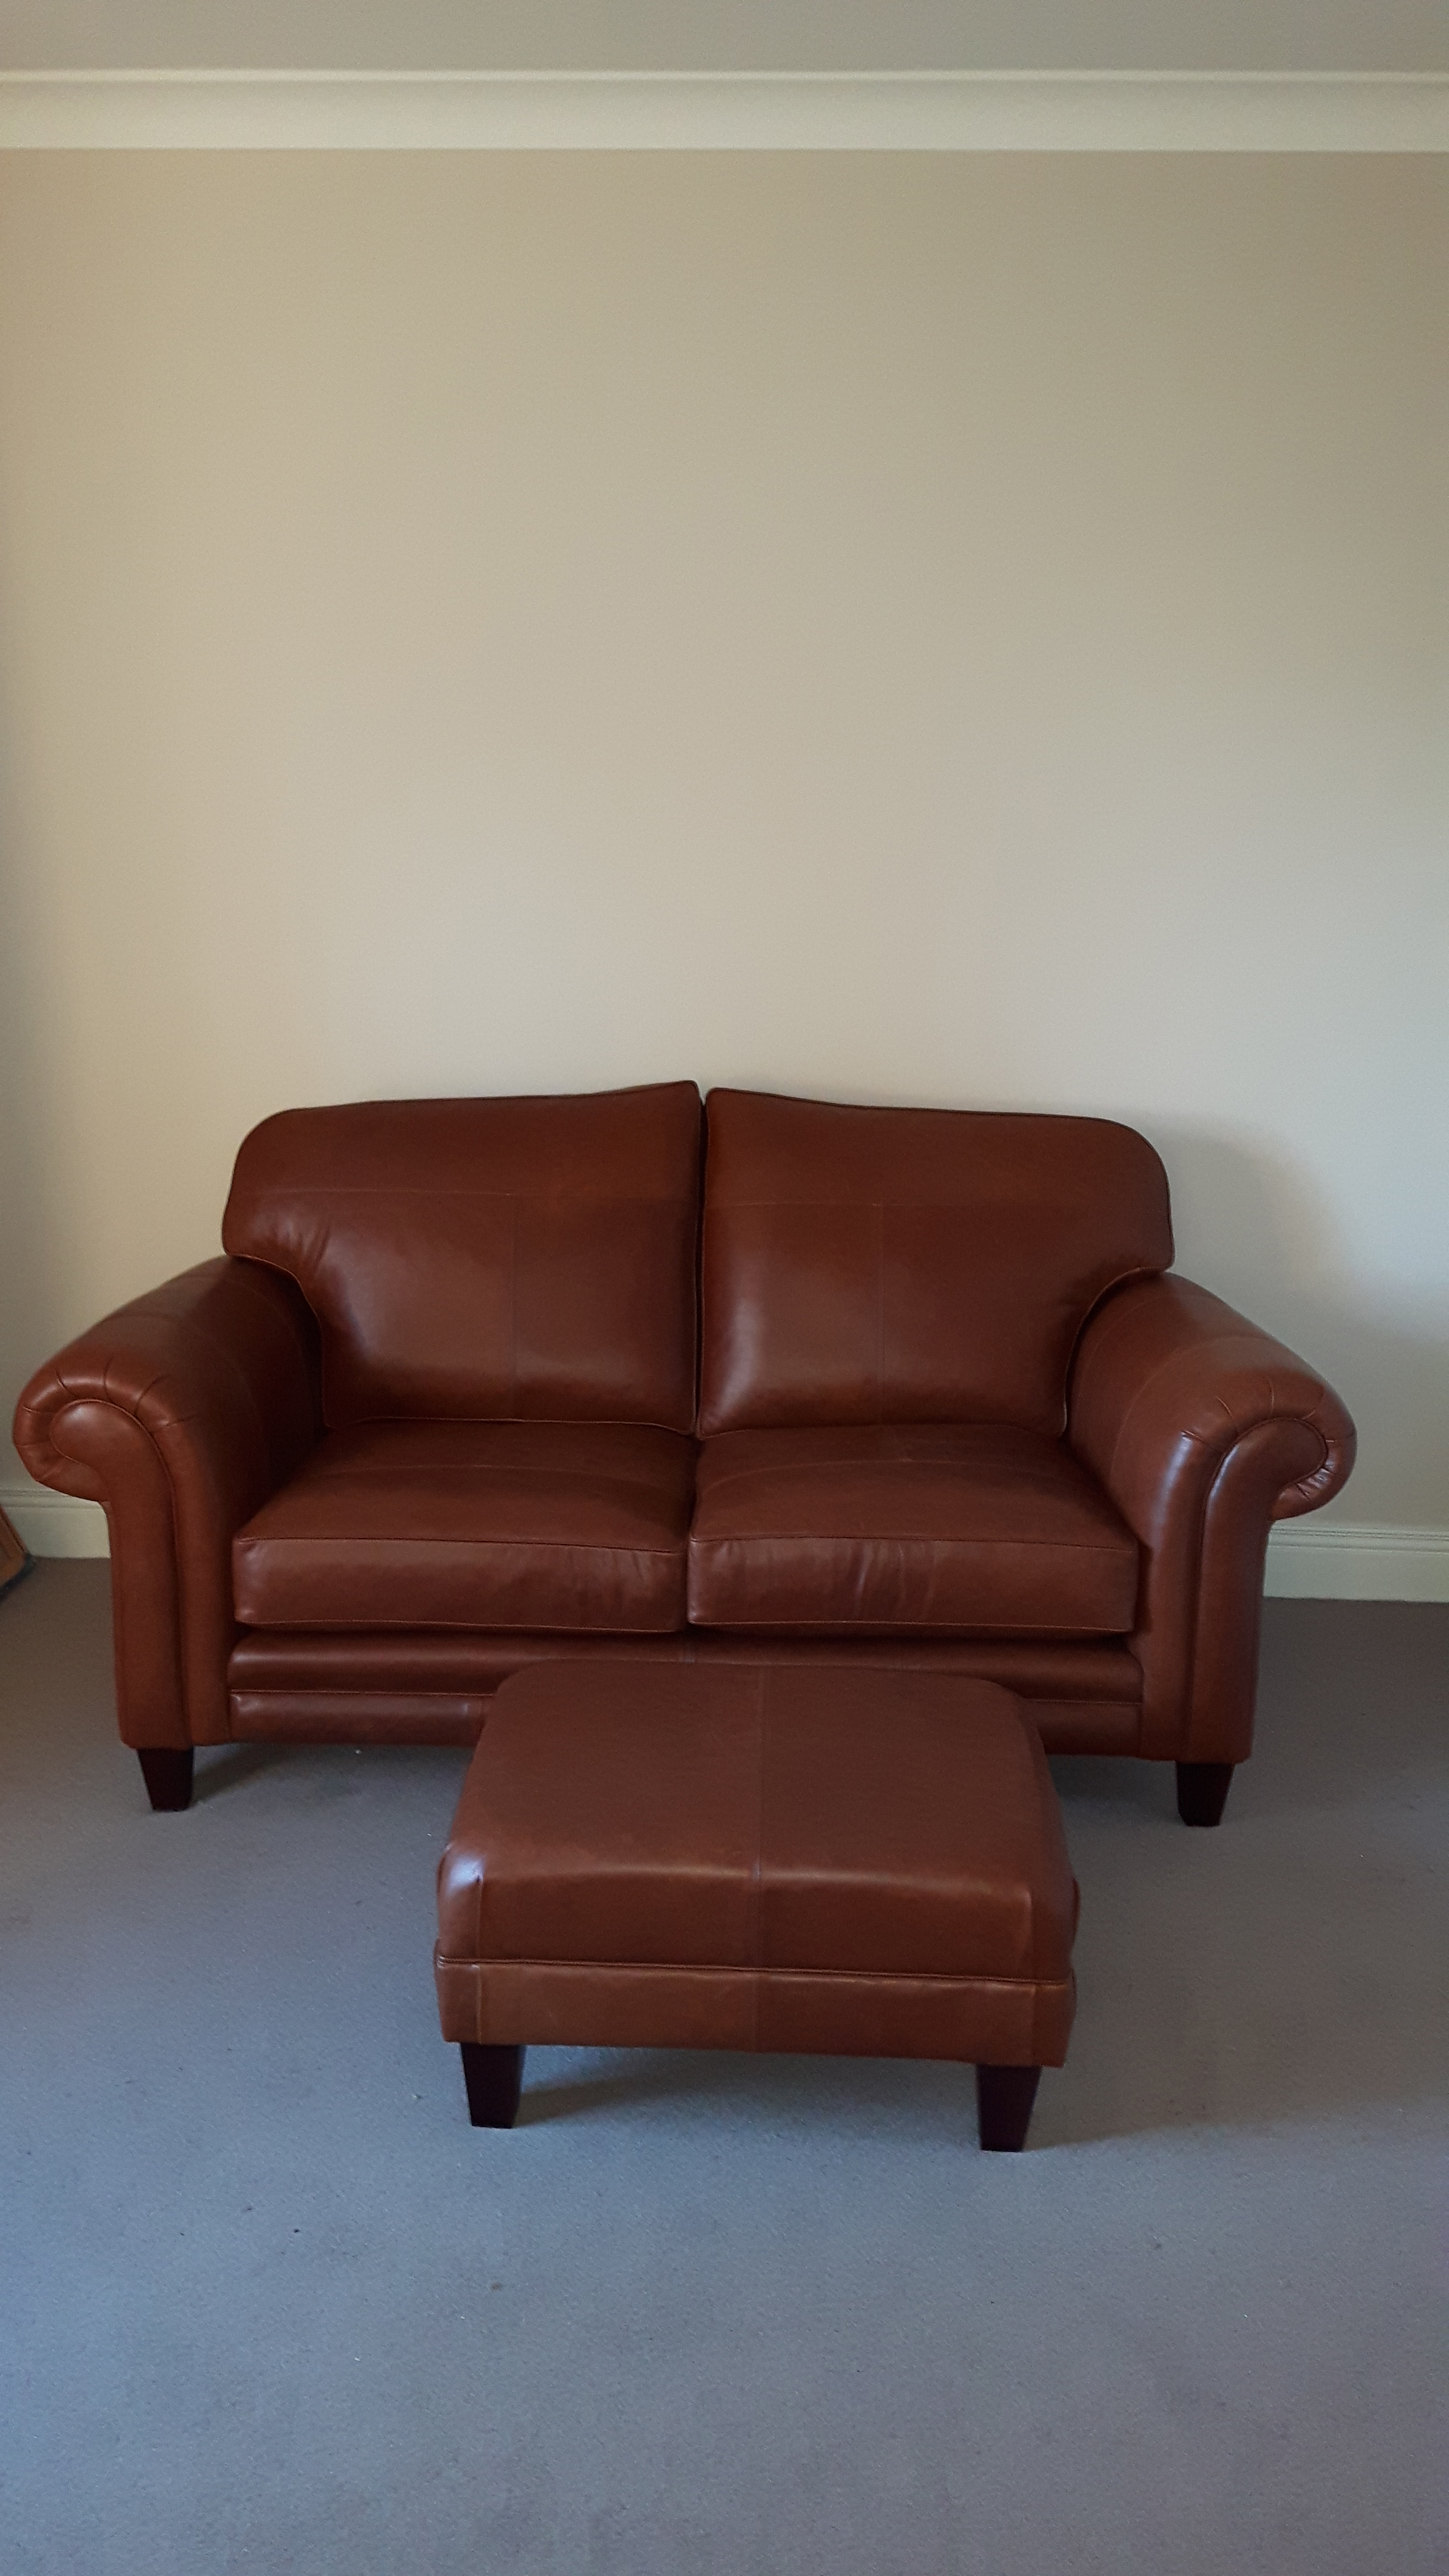 Leather Louis Small Sofa & Costa Footstool - Mustang Tan